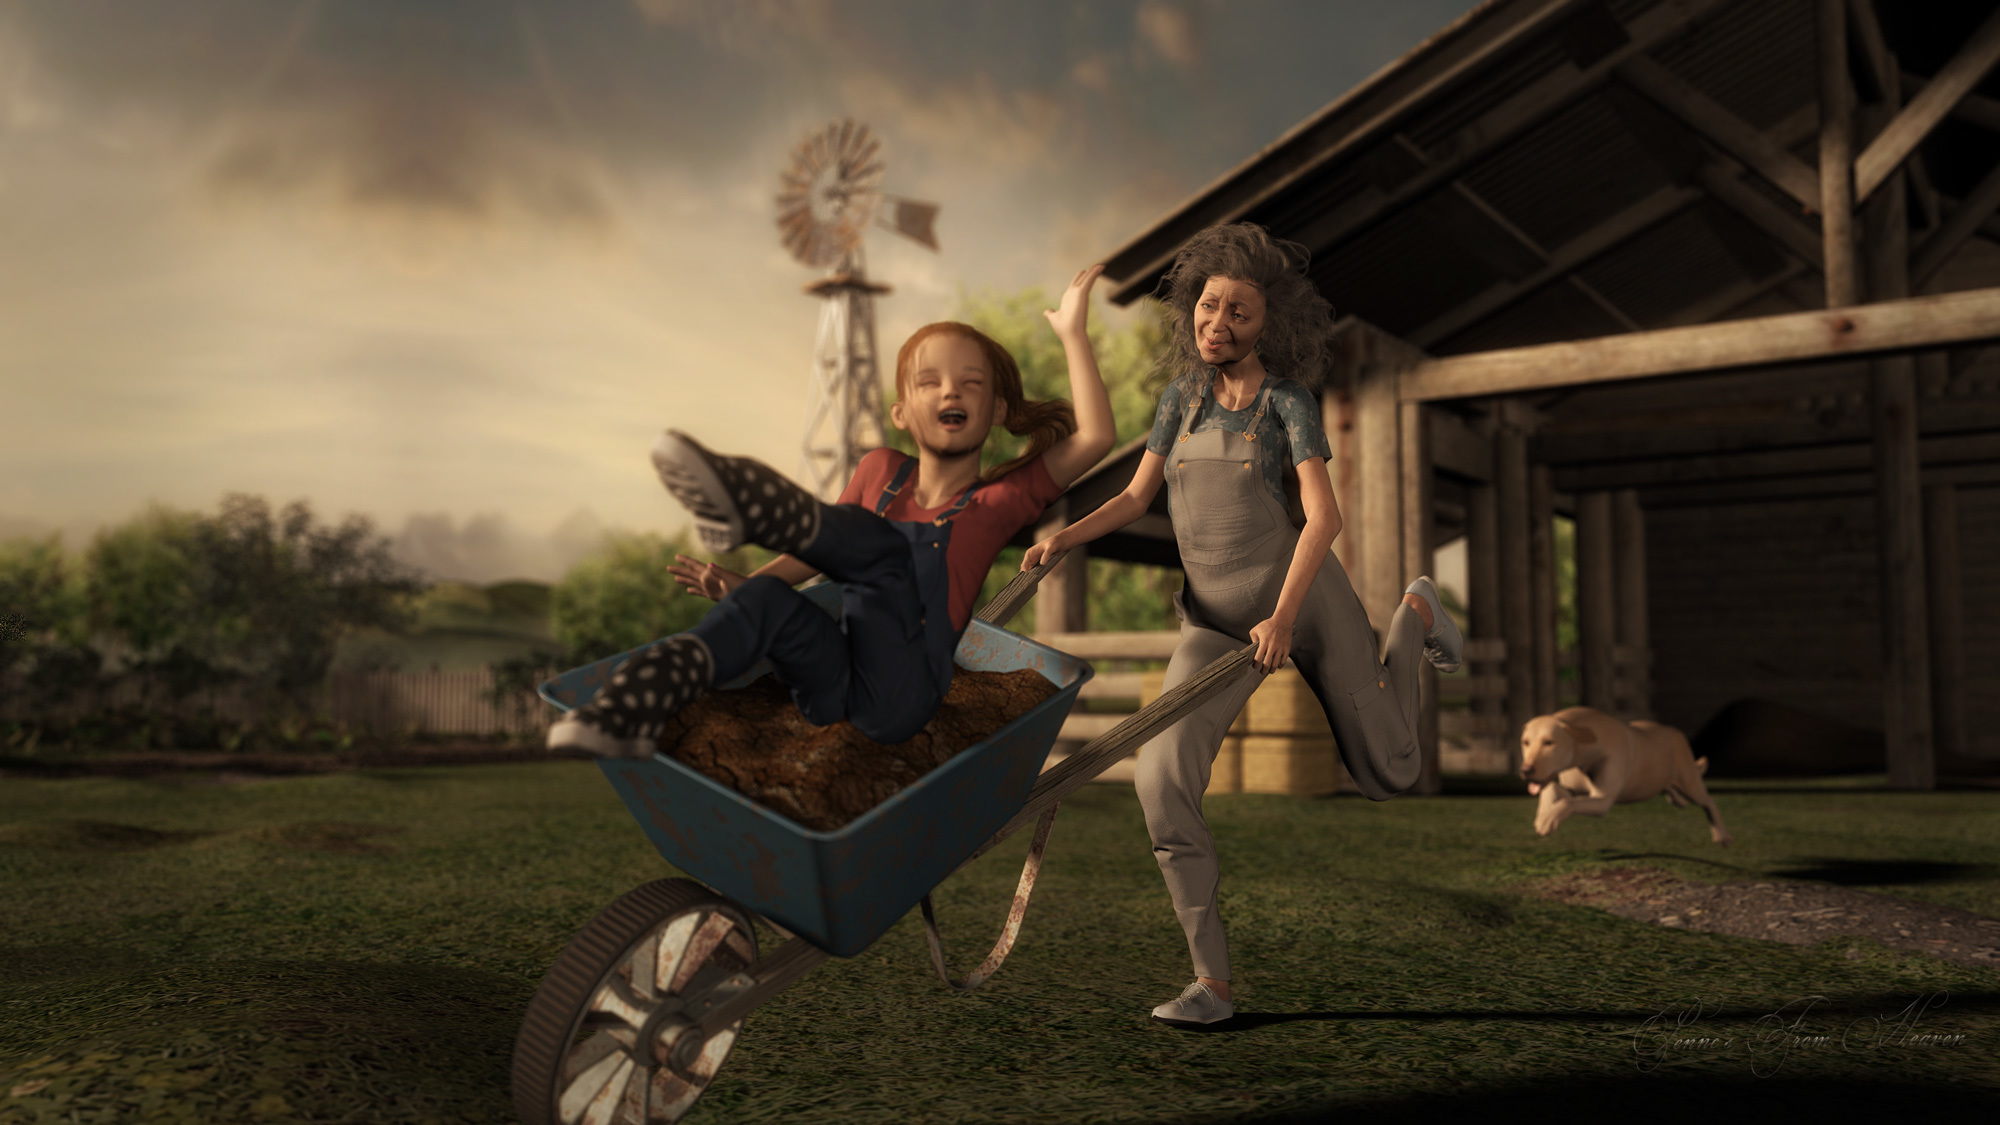 Gardening With Granny by dollmommy Prime Members Gallery Humor